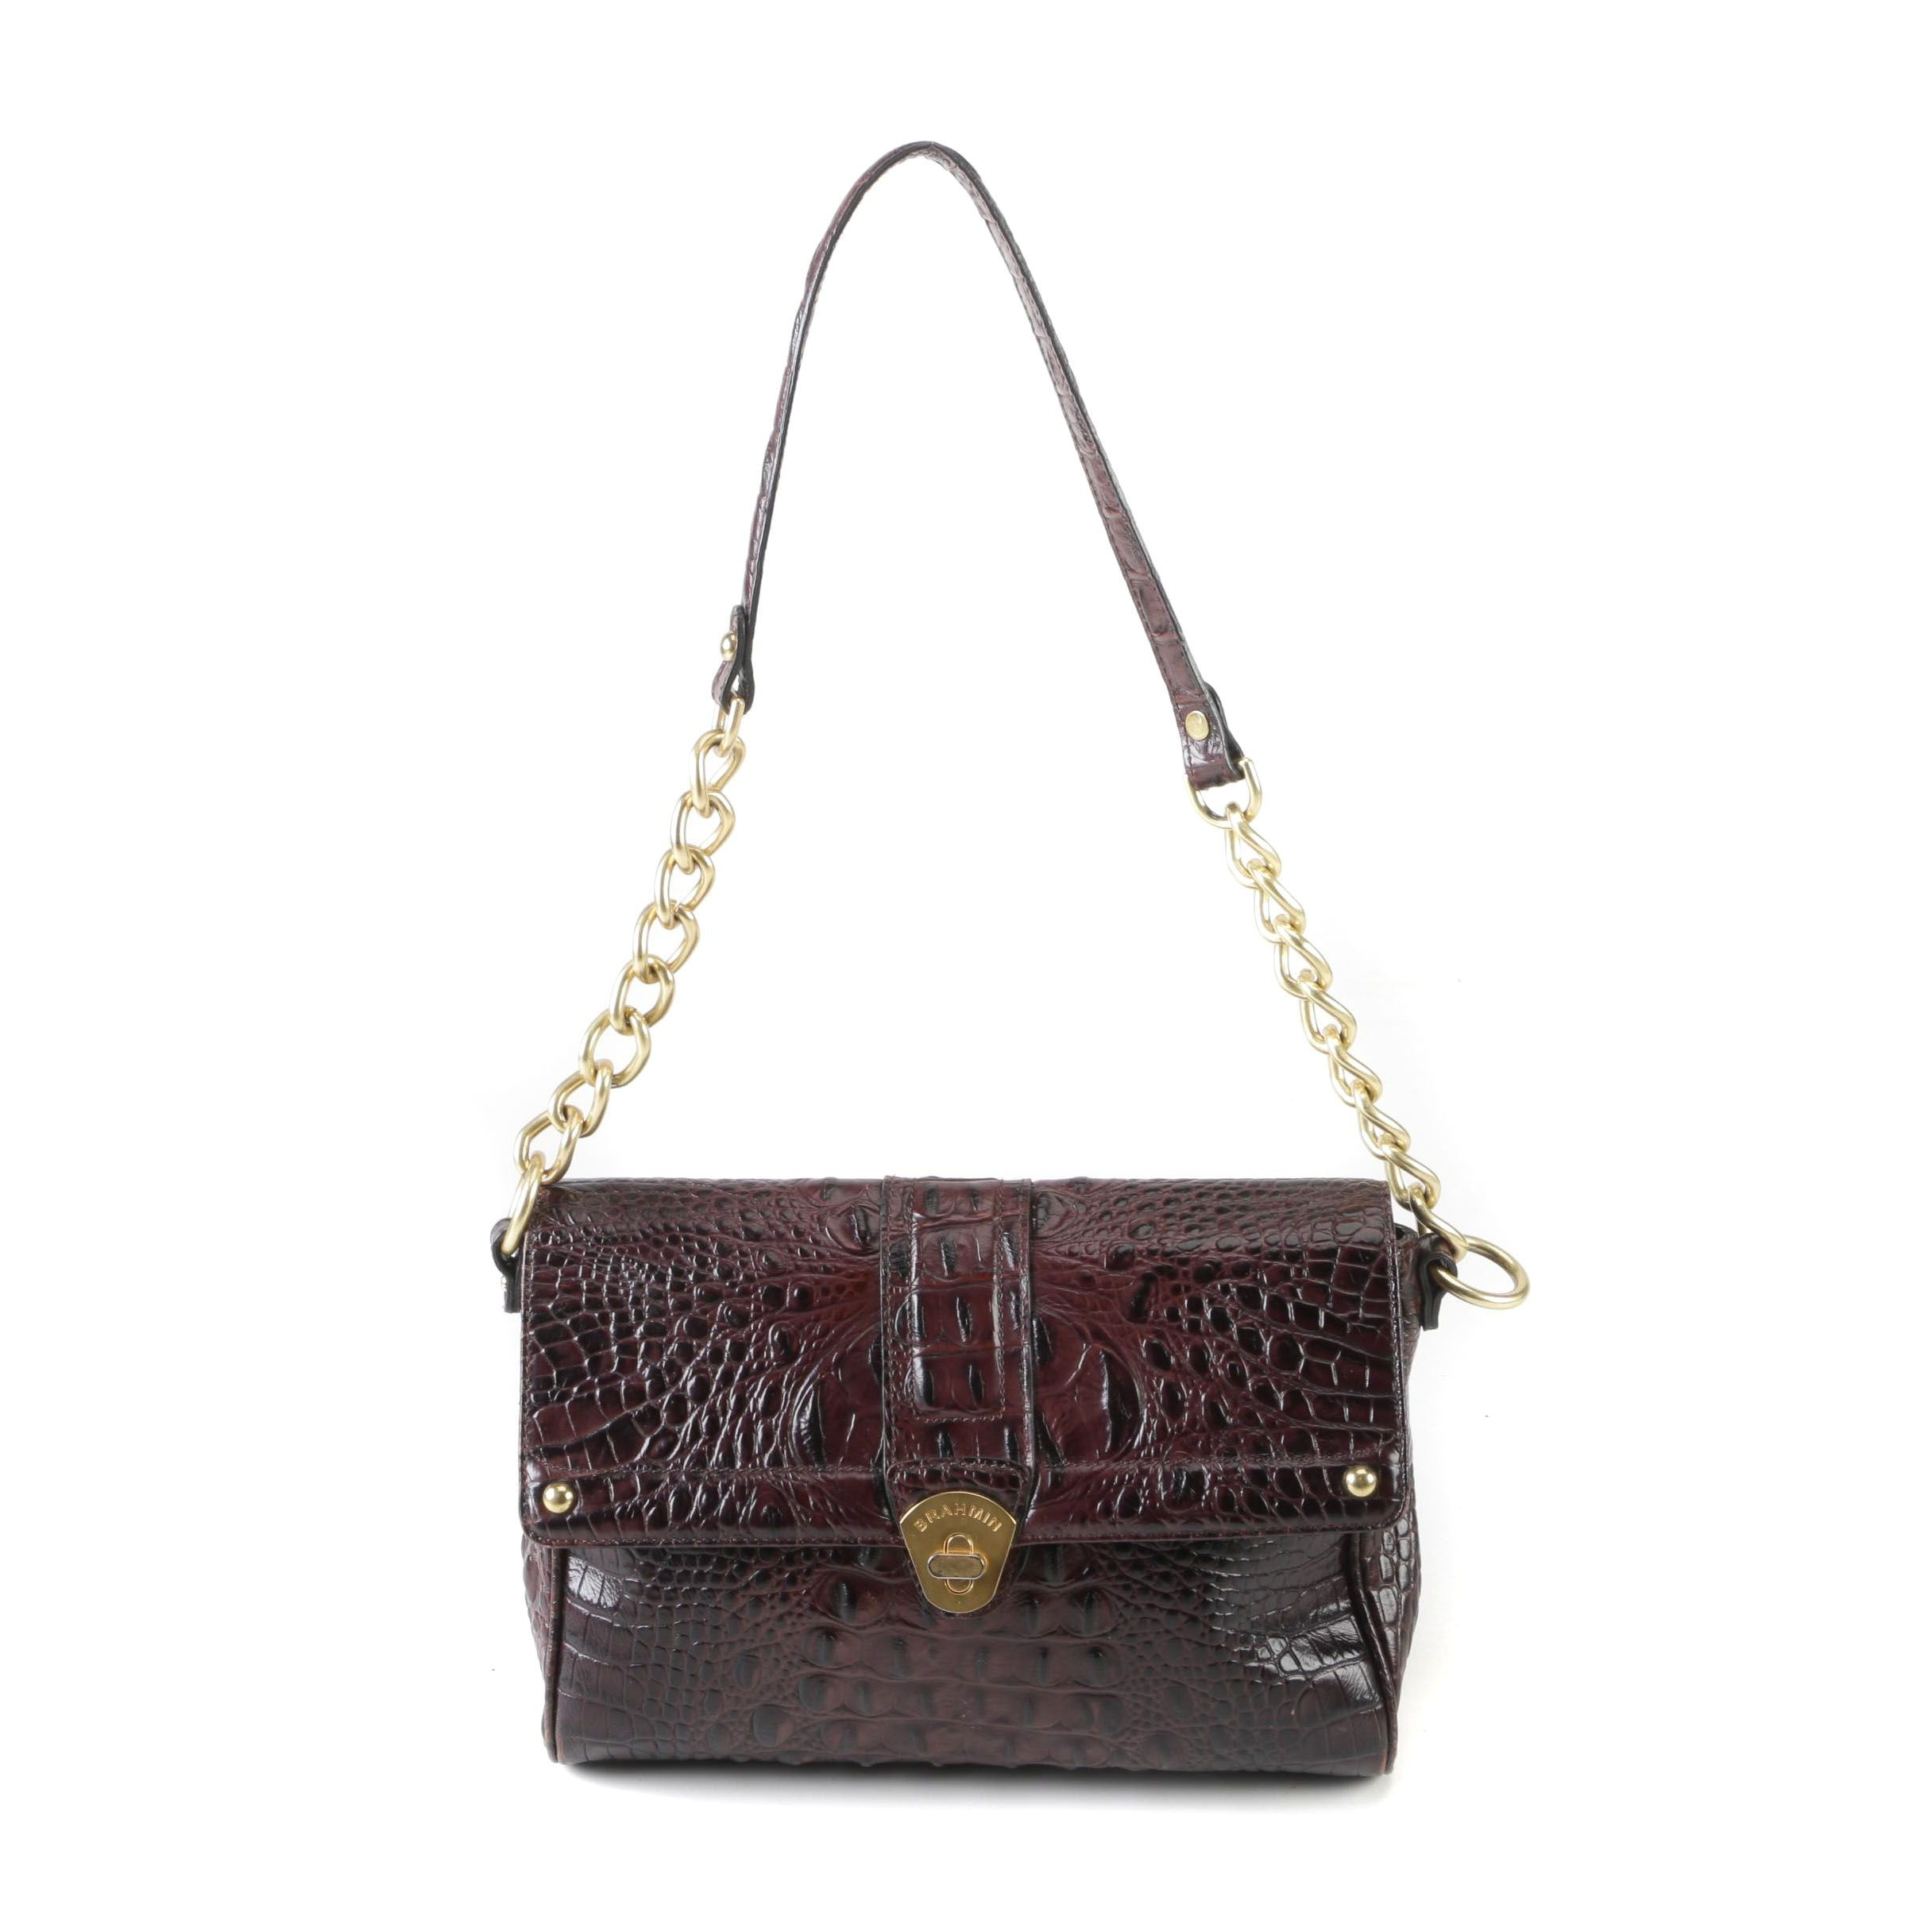 Brahmin Dark Brown Embossed Leather Shoulder Bag